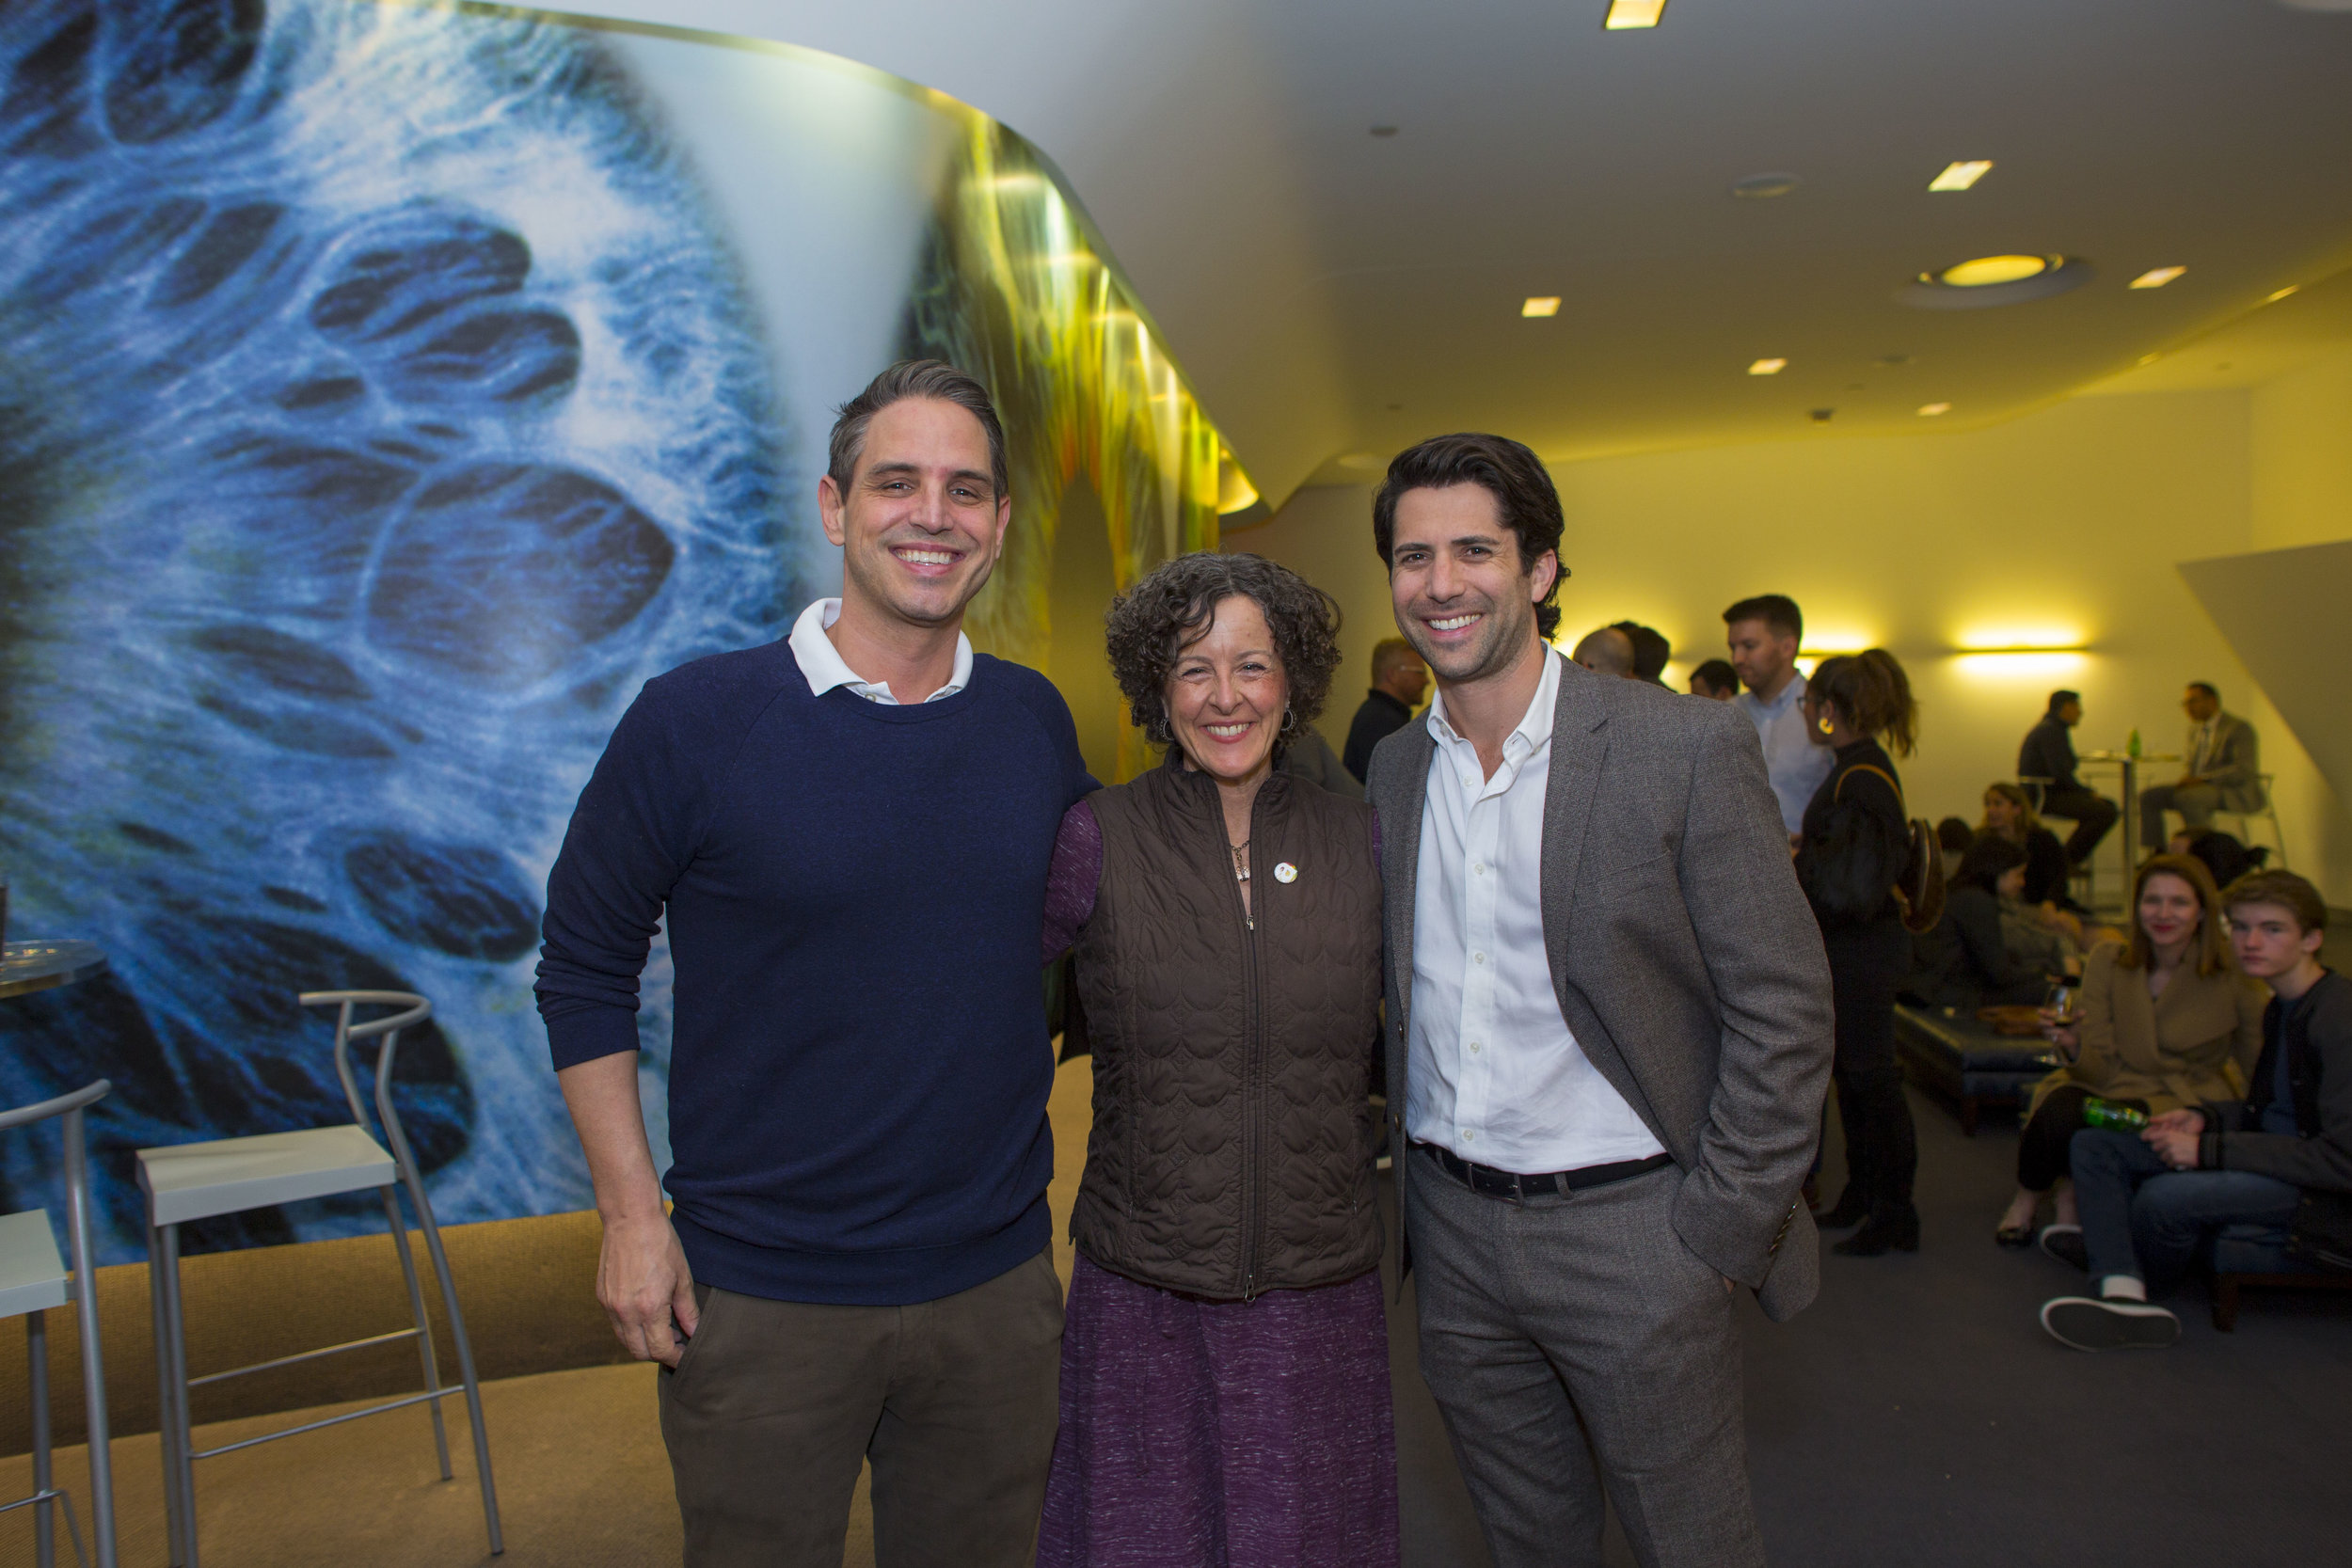 (from left)  Film Director   Greg Berlanti,  artworx LA Executive Director Cynthia Campoy Brophy, and WME Talent Agent Jordan Cerf.